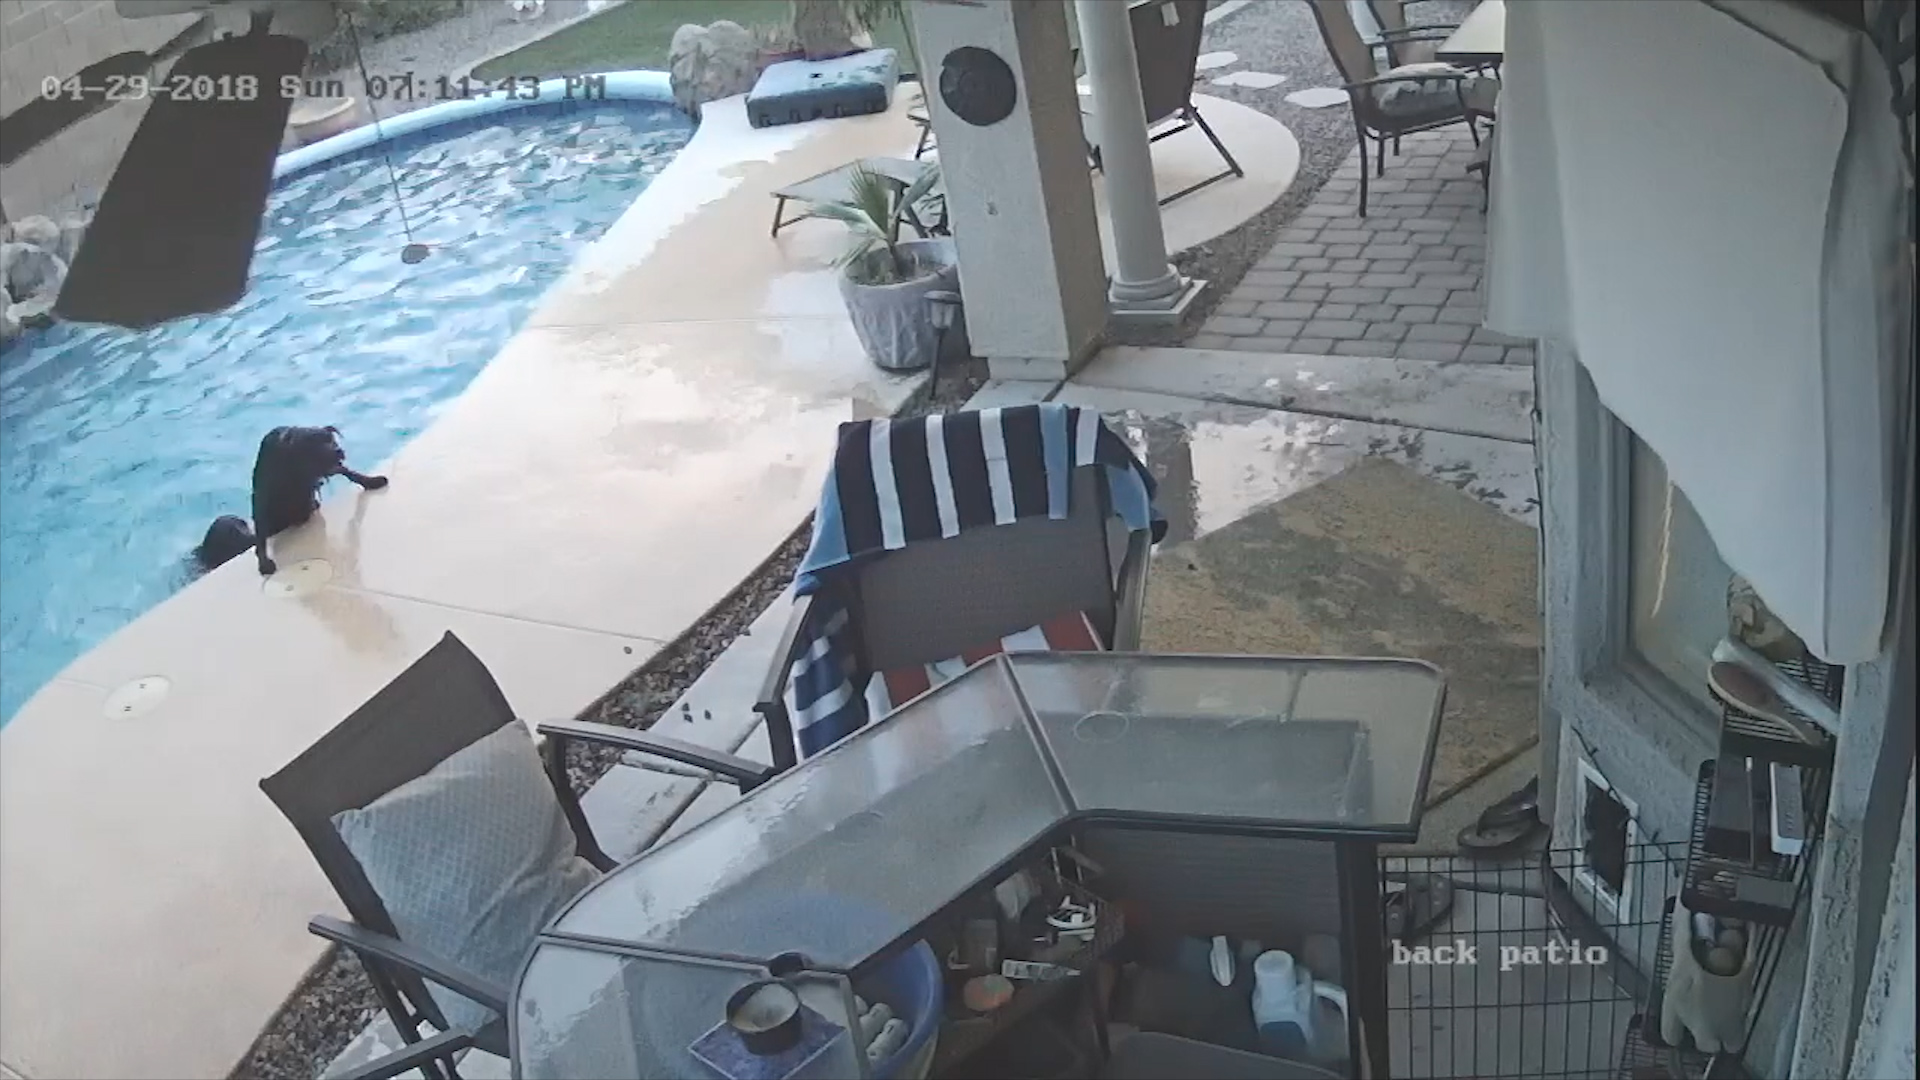 Video shows dog save best friend from drowning in pool